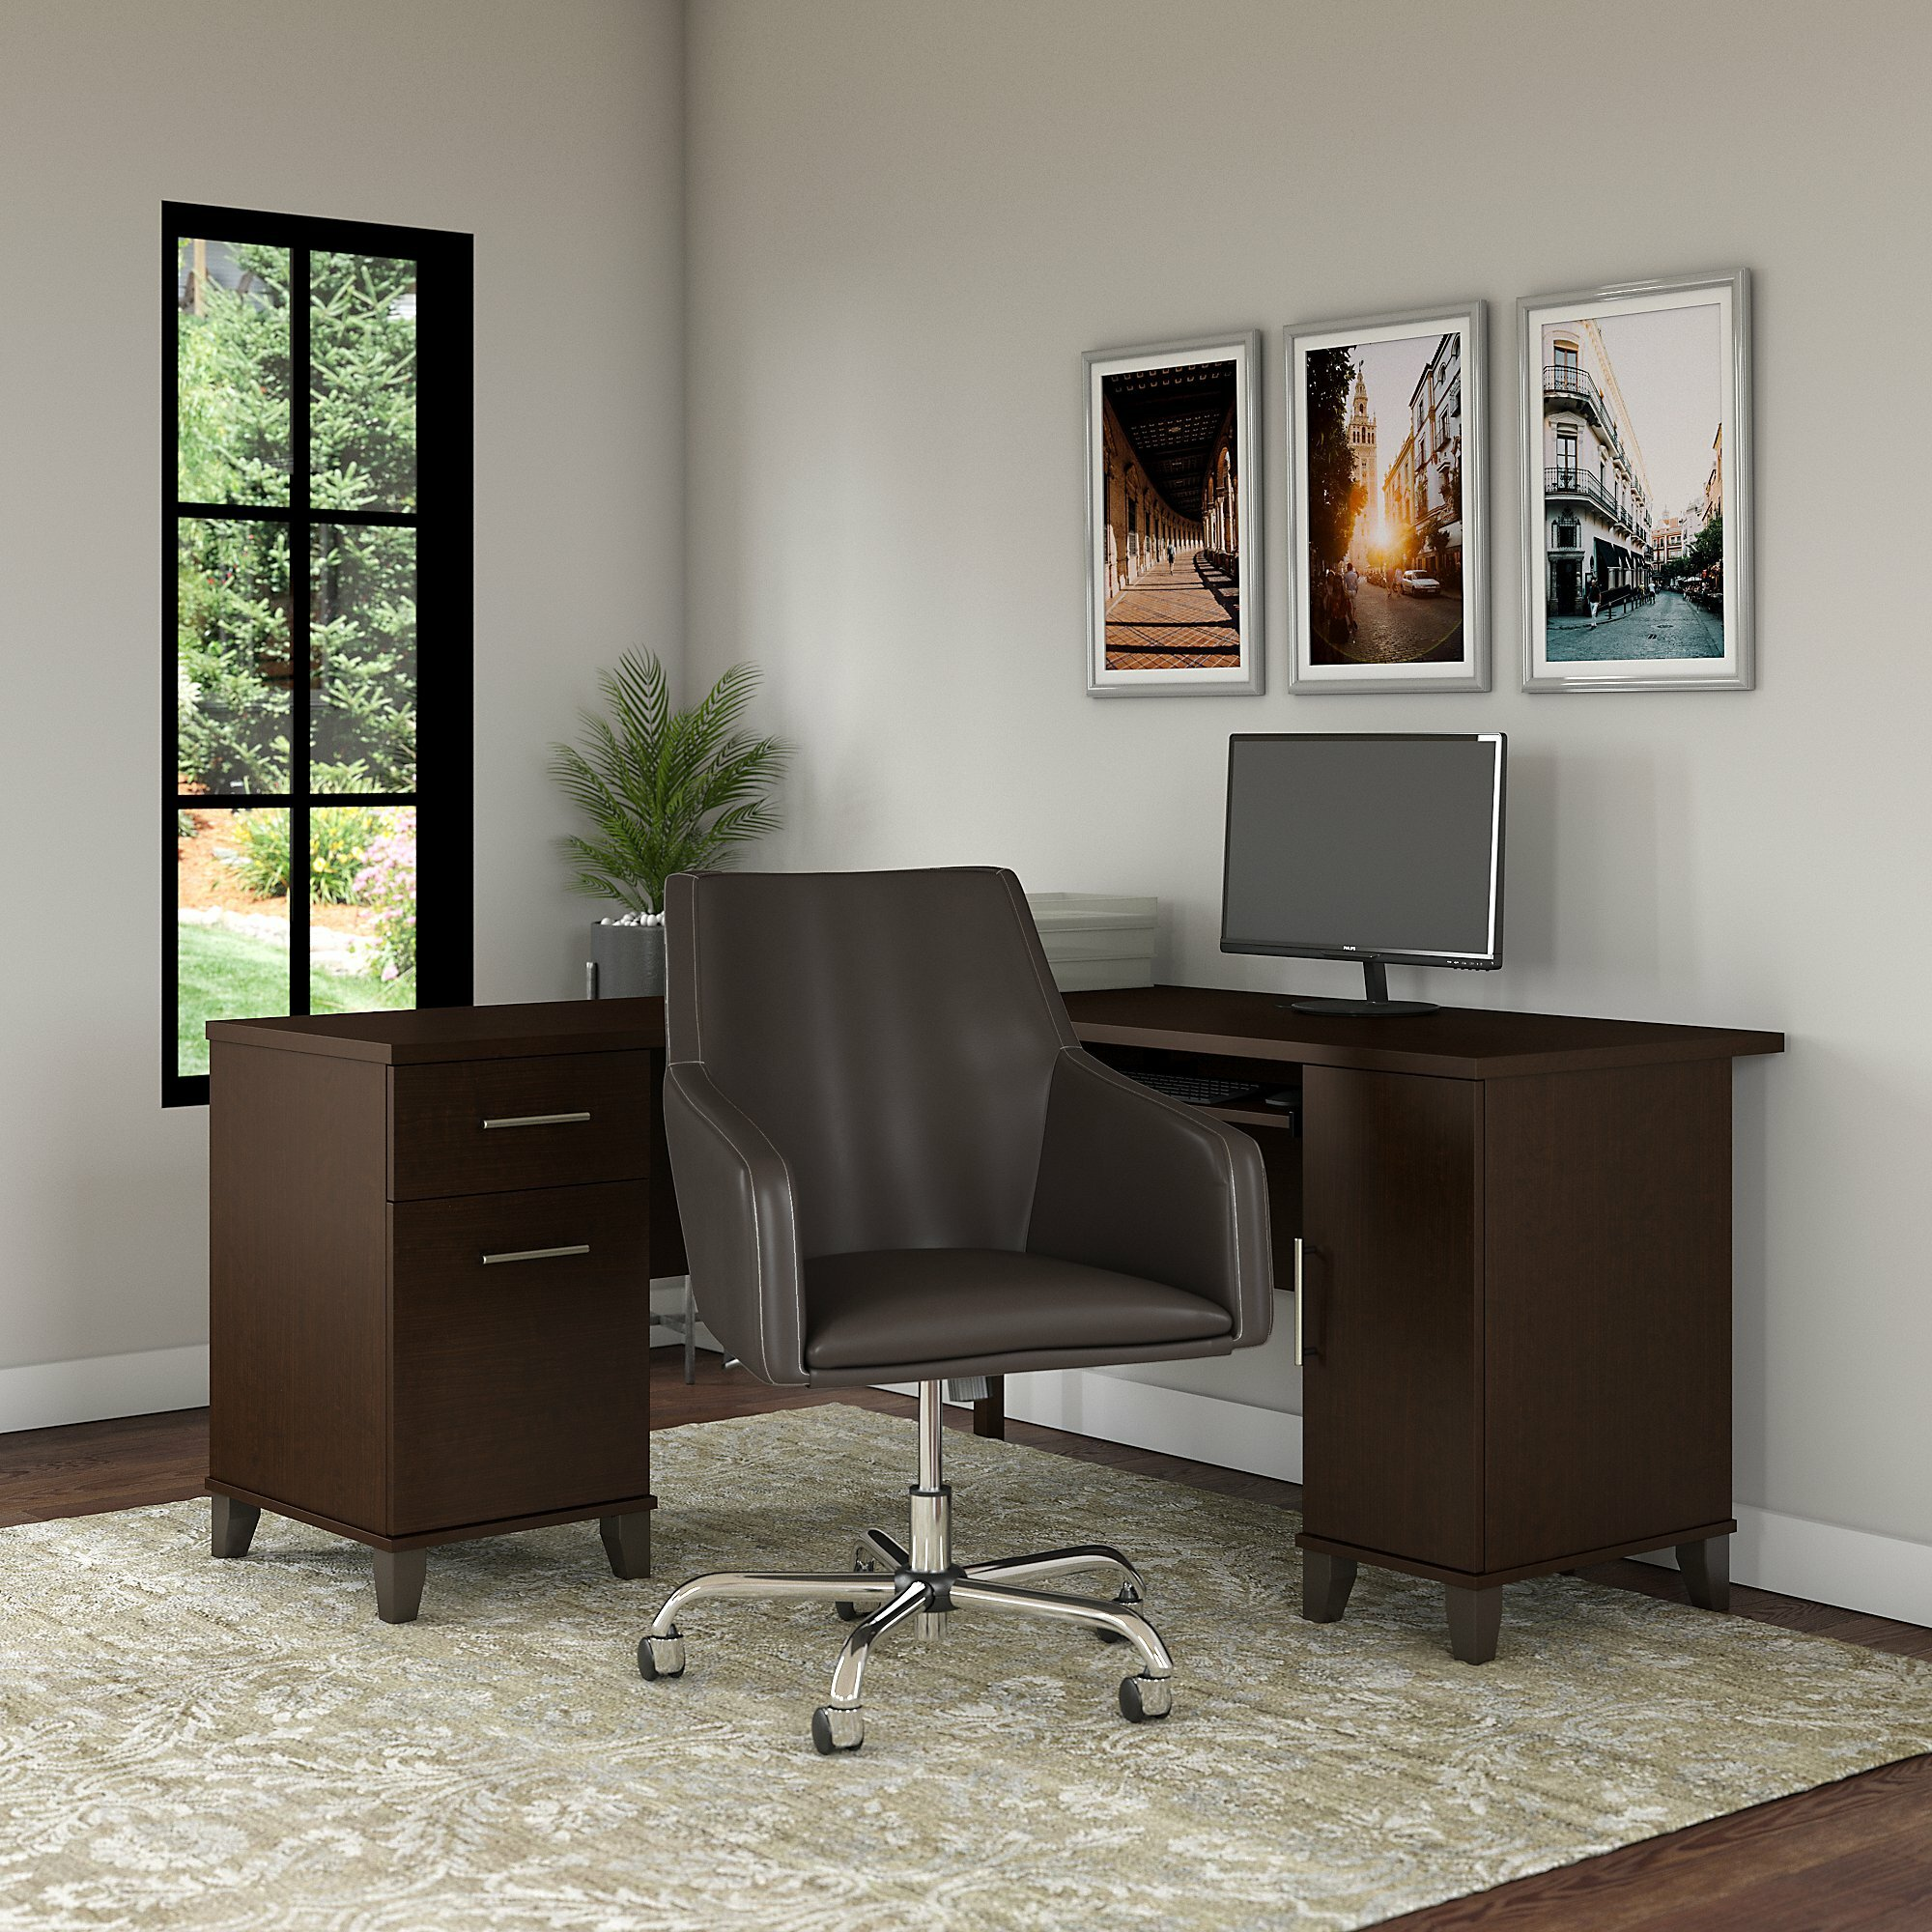 Stupendous Kirchoff Reversible L Shaped Desk And Chair Set Andrewgaddart Wooden Chair Designs For Living Room Andrewgaddartcom